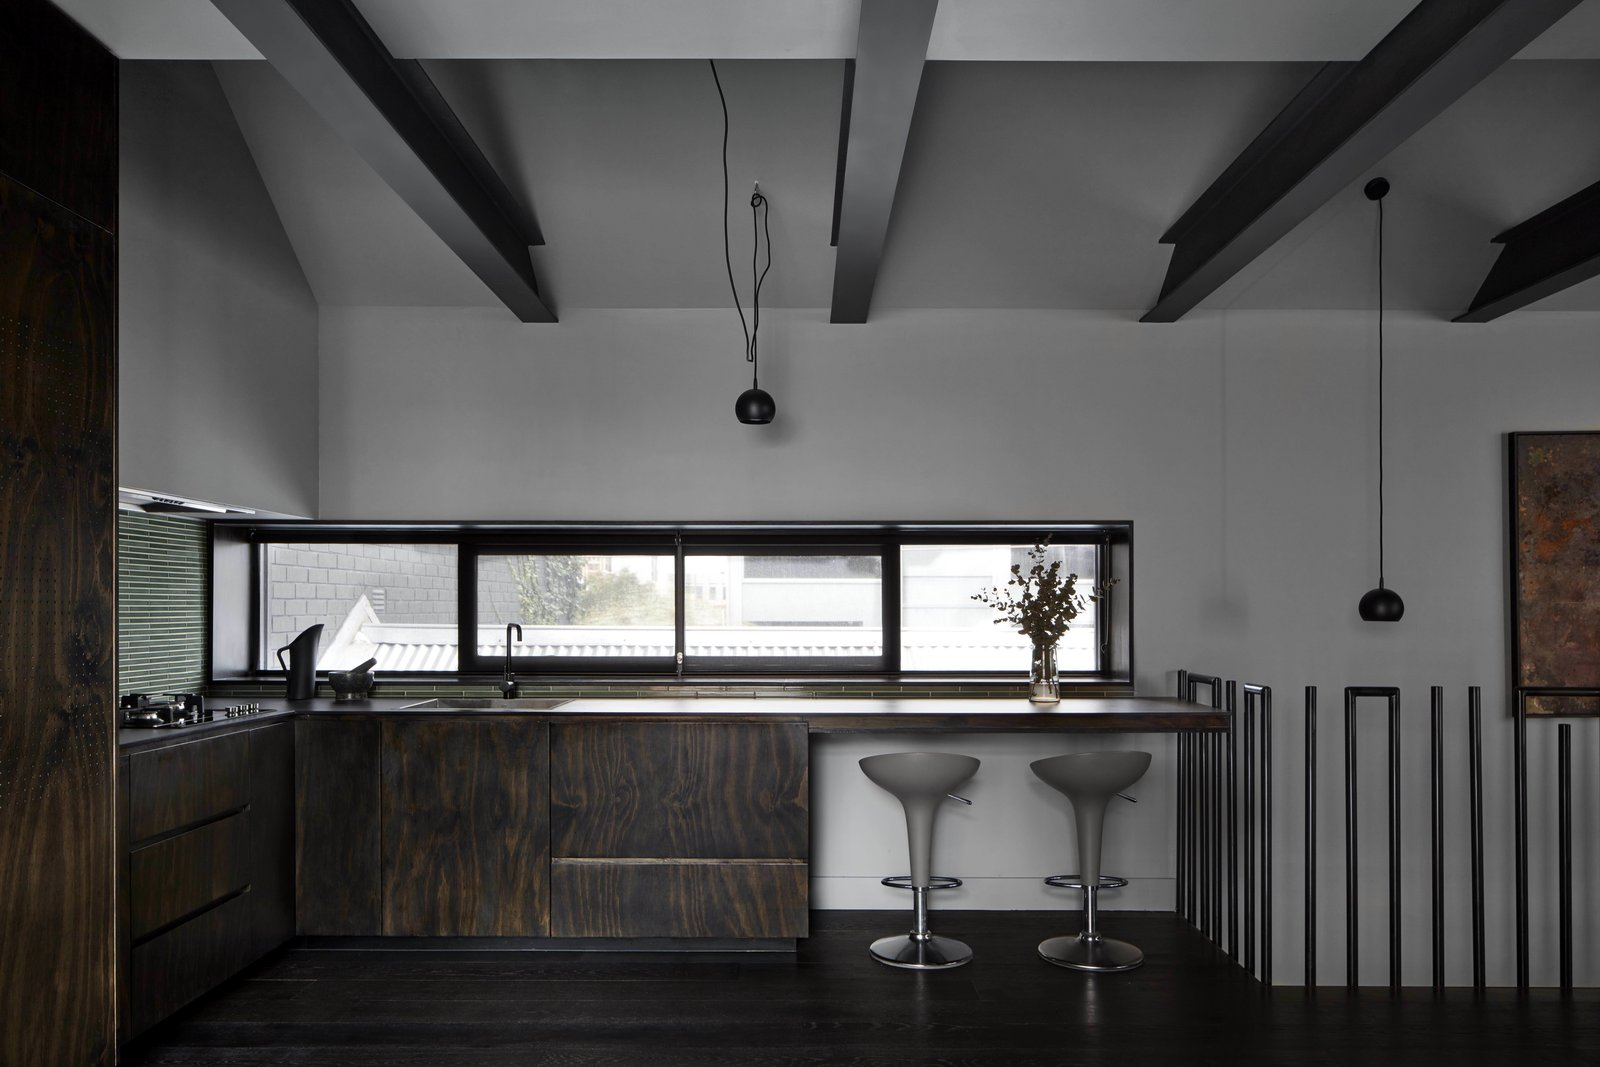 Kitchen, Range, Wood, Pendant, Drop In, and Dark Hardwood  Best Kitchen Wood Drop In Pendant Dark Hardwood Photos from One of Melbourne's Oldest Prefab Timber Cottages Gets a Second Chance